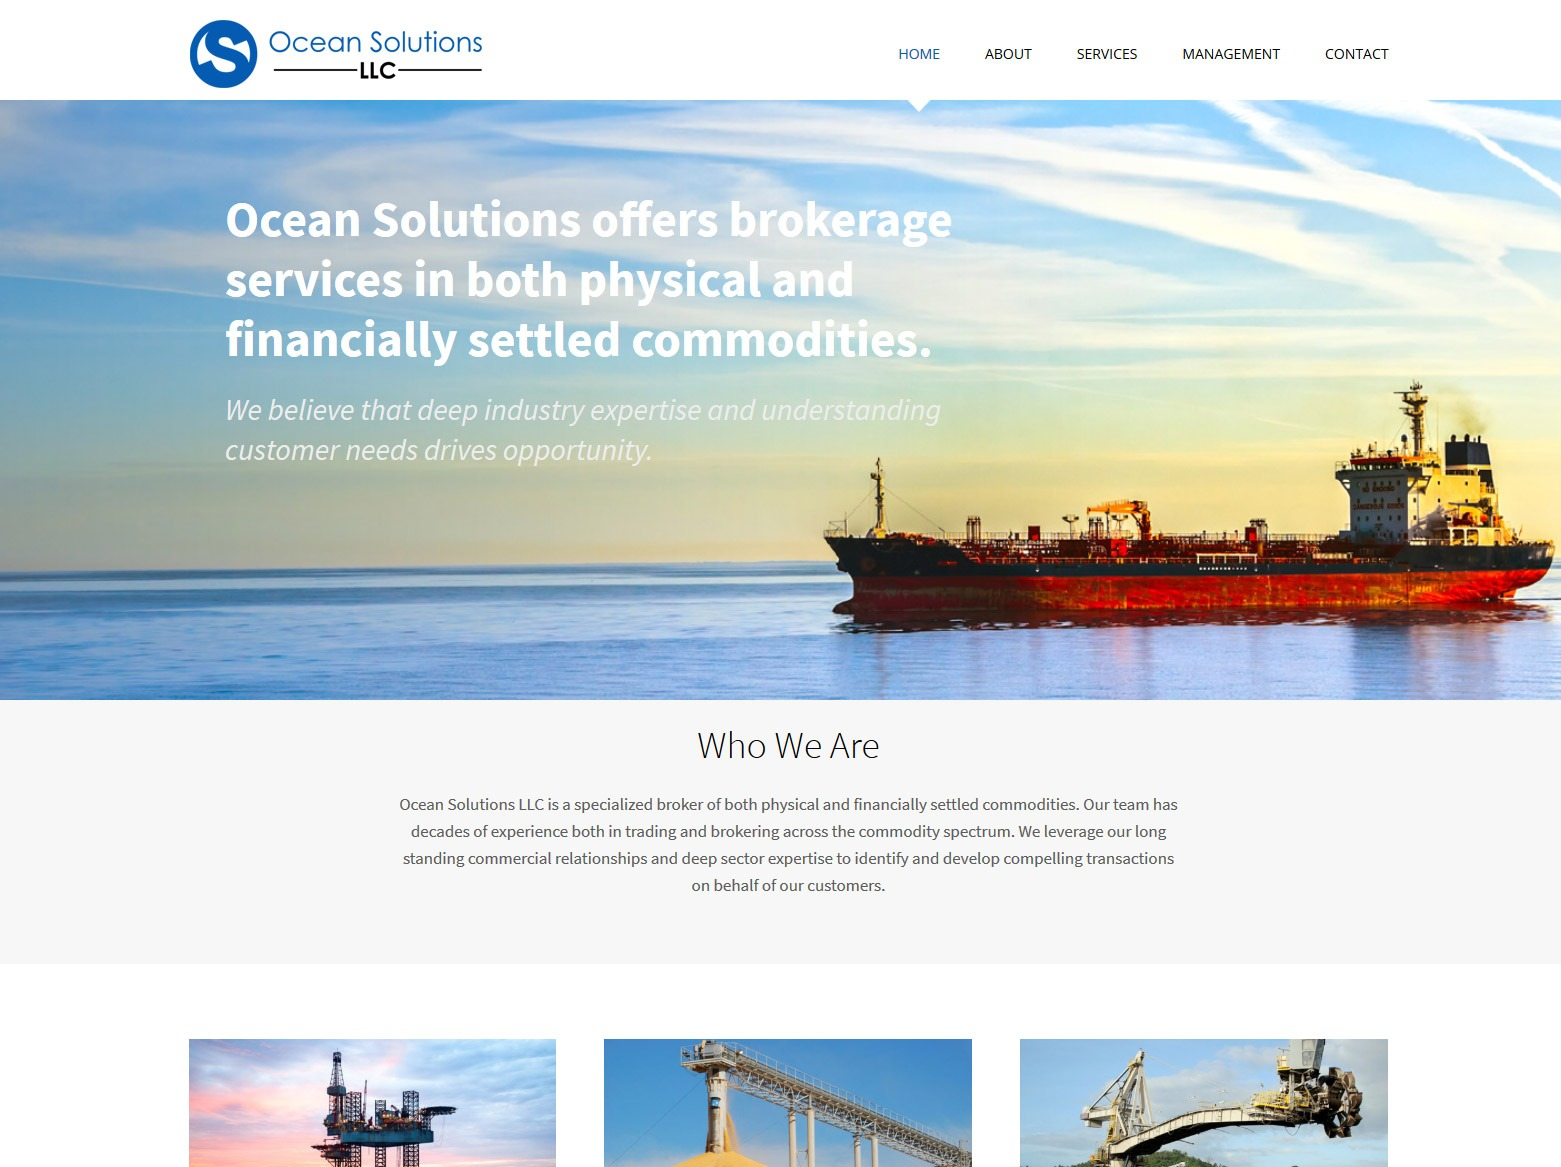 Los Angeles Commodity Web Design Company